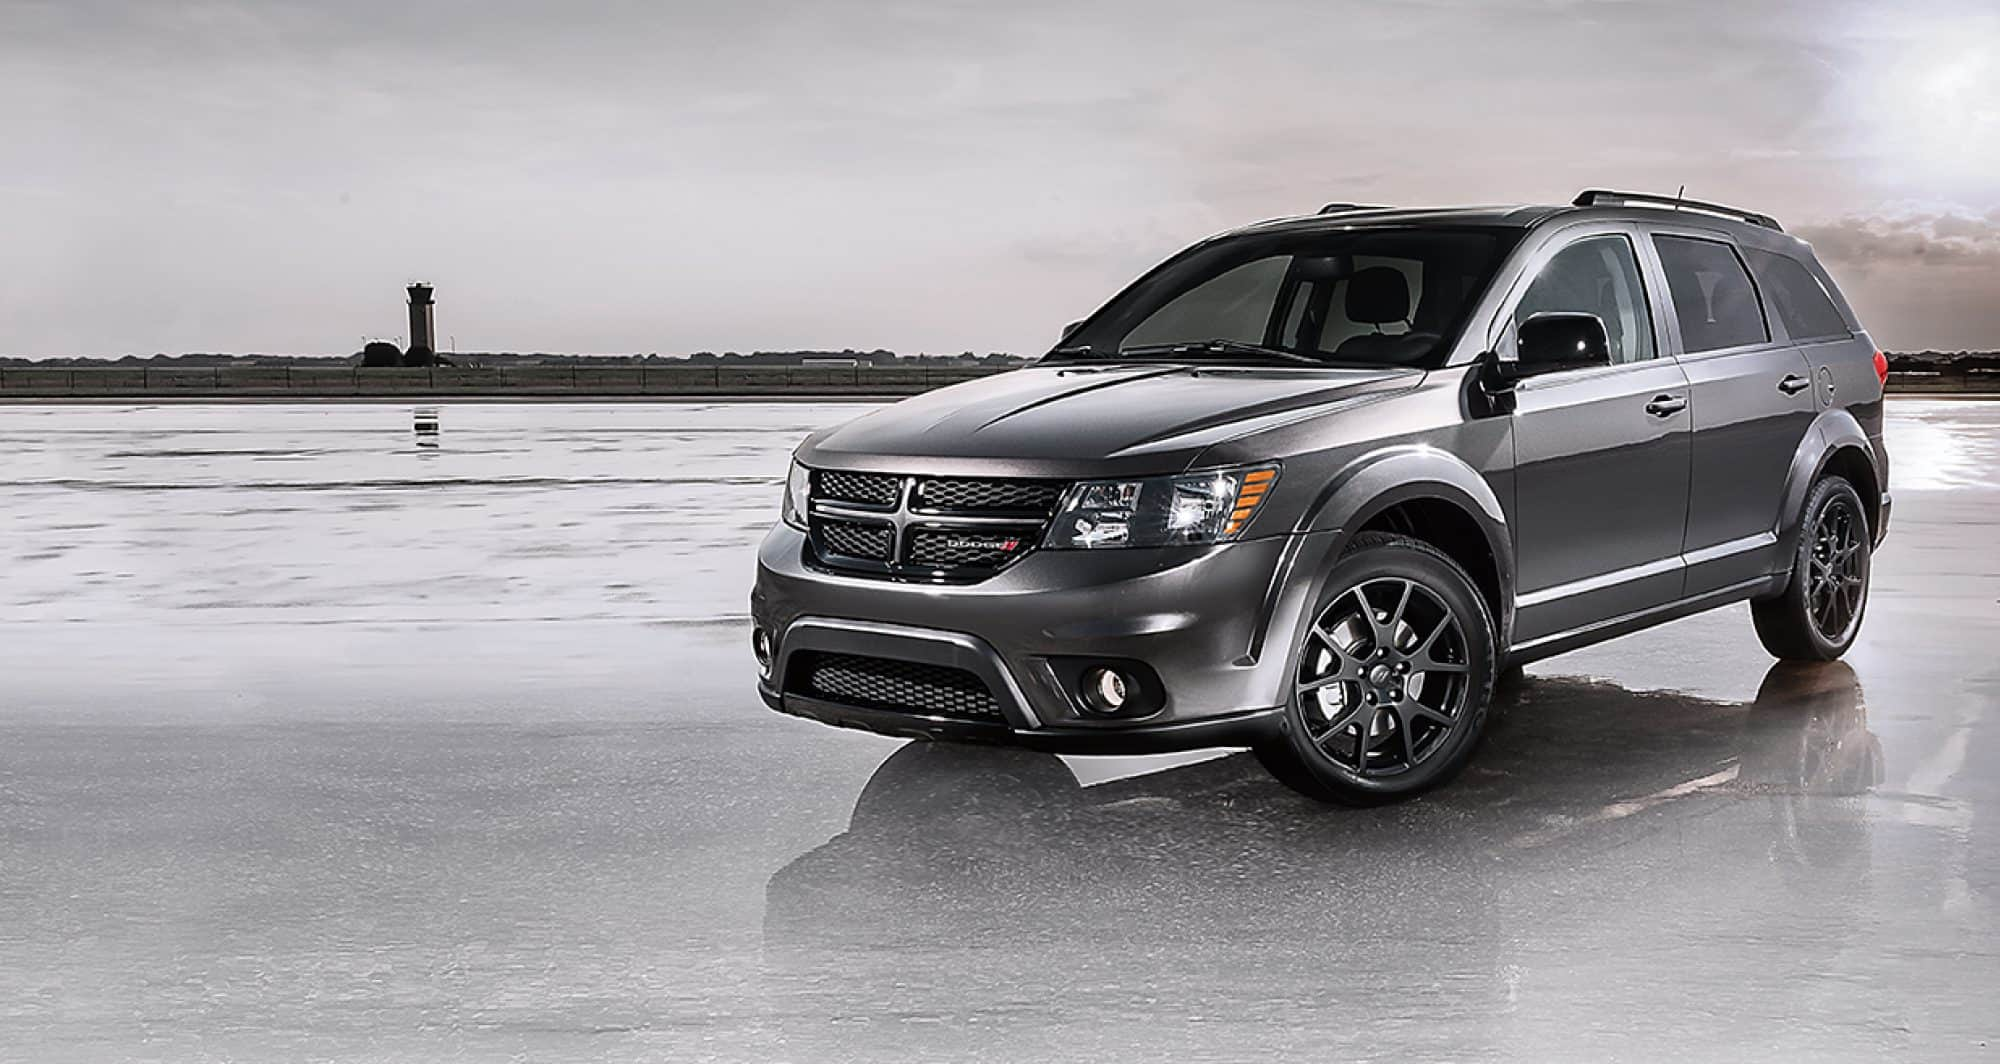 Jeep Springfield Pa >> 2018 Dodge Journey for sale near Philadelphia, Norristown, Springfield, PA